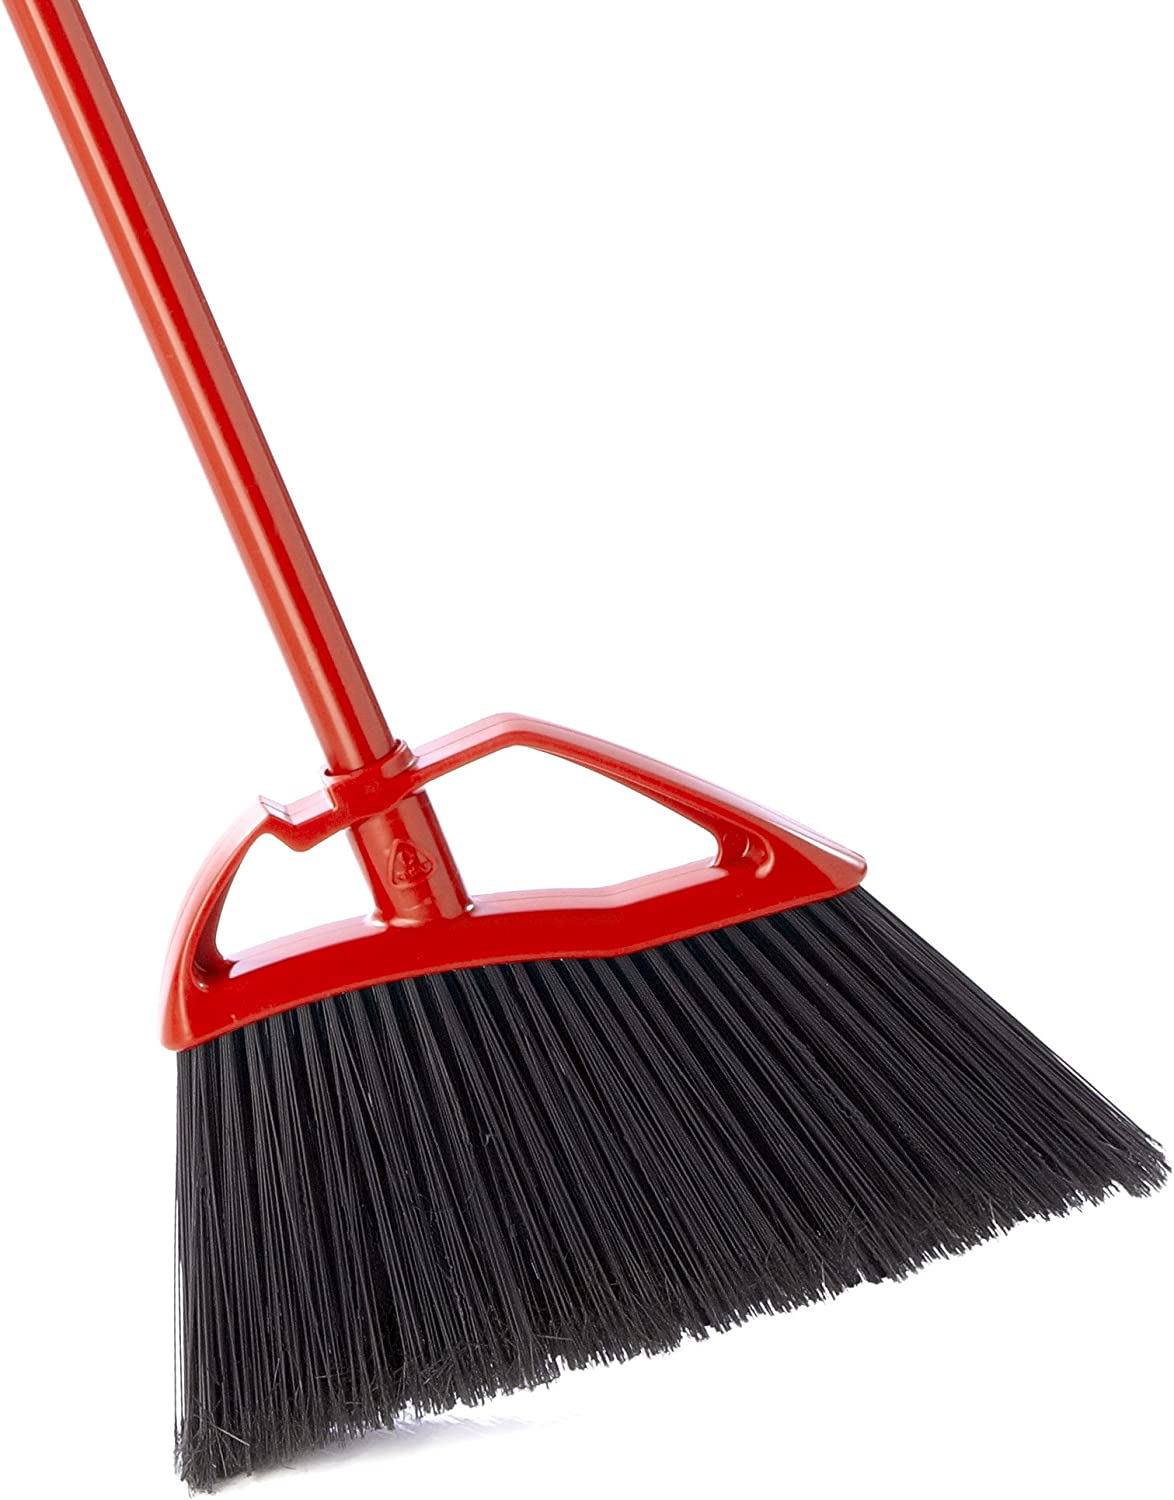 O-Cedar Fast 'N Easy Angle Broom: Home & Kitchen